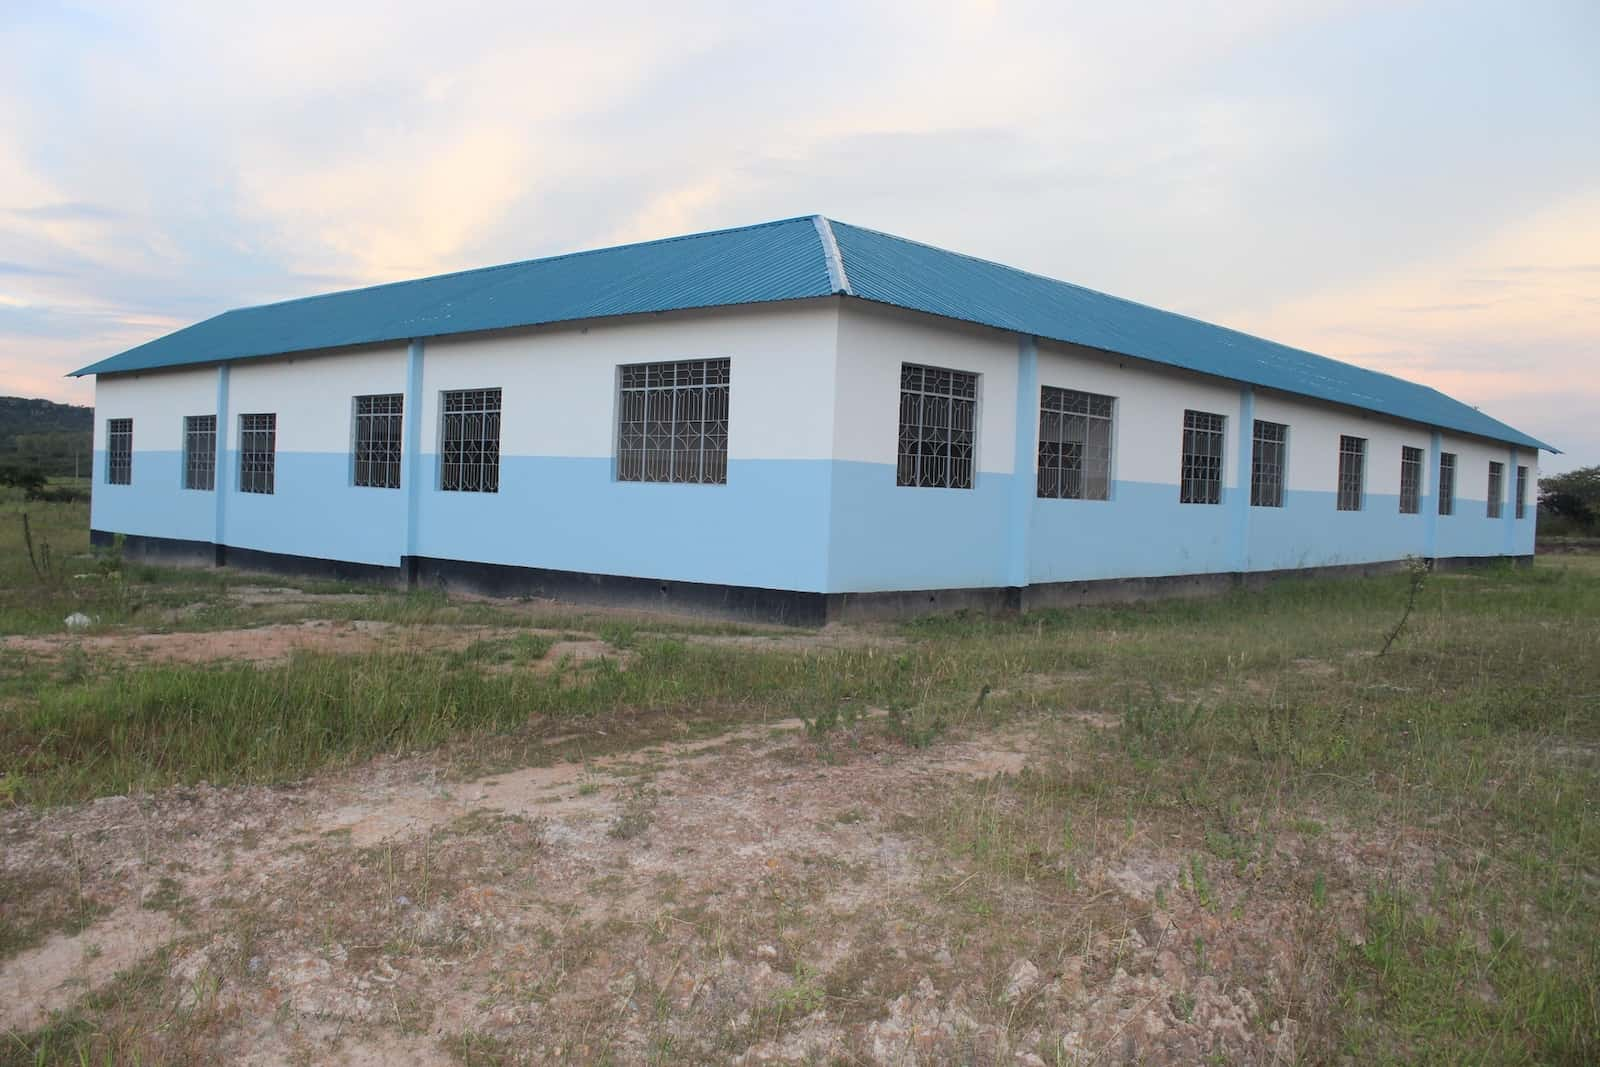 A school building with blue and white walls and windows with wrought iron bars.